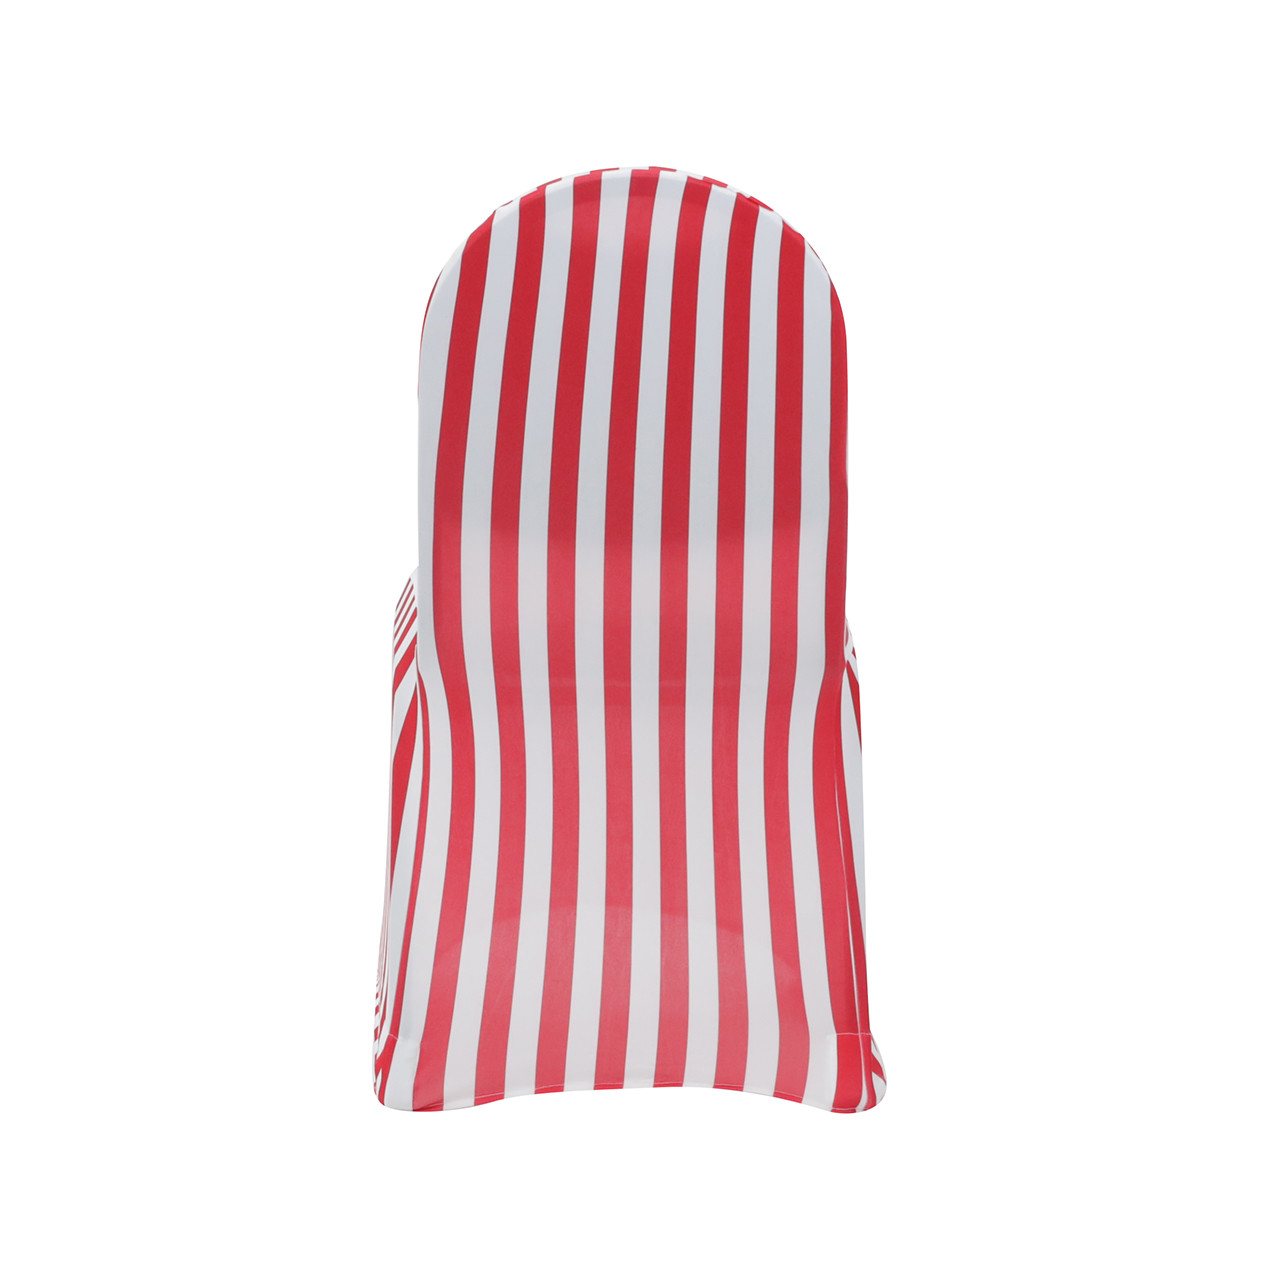 ... Red And White Spandex Striped Chair Covers ...